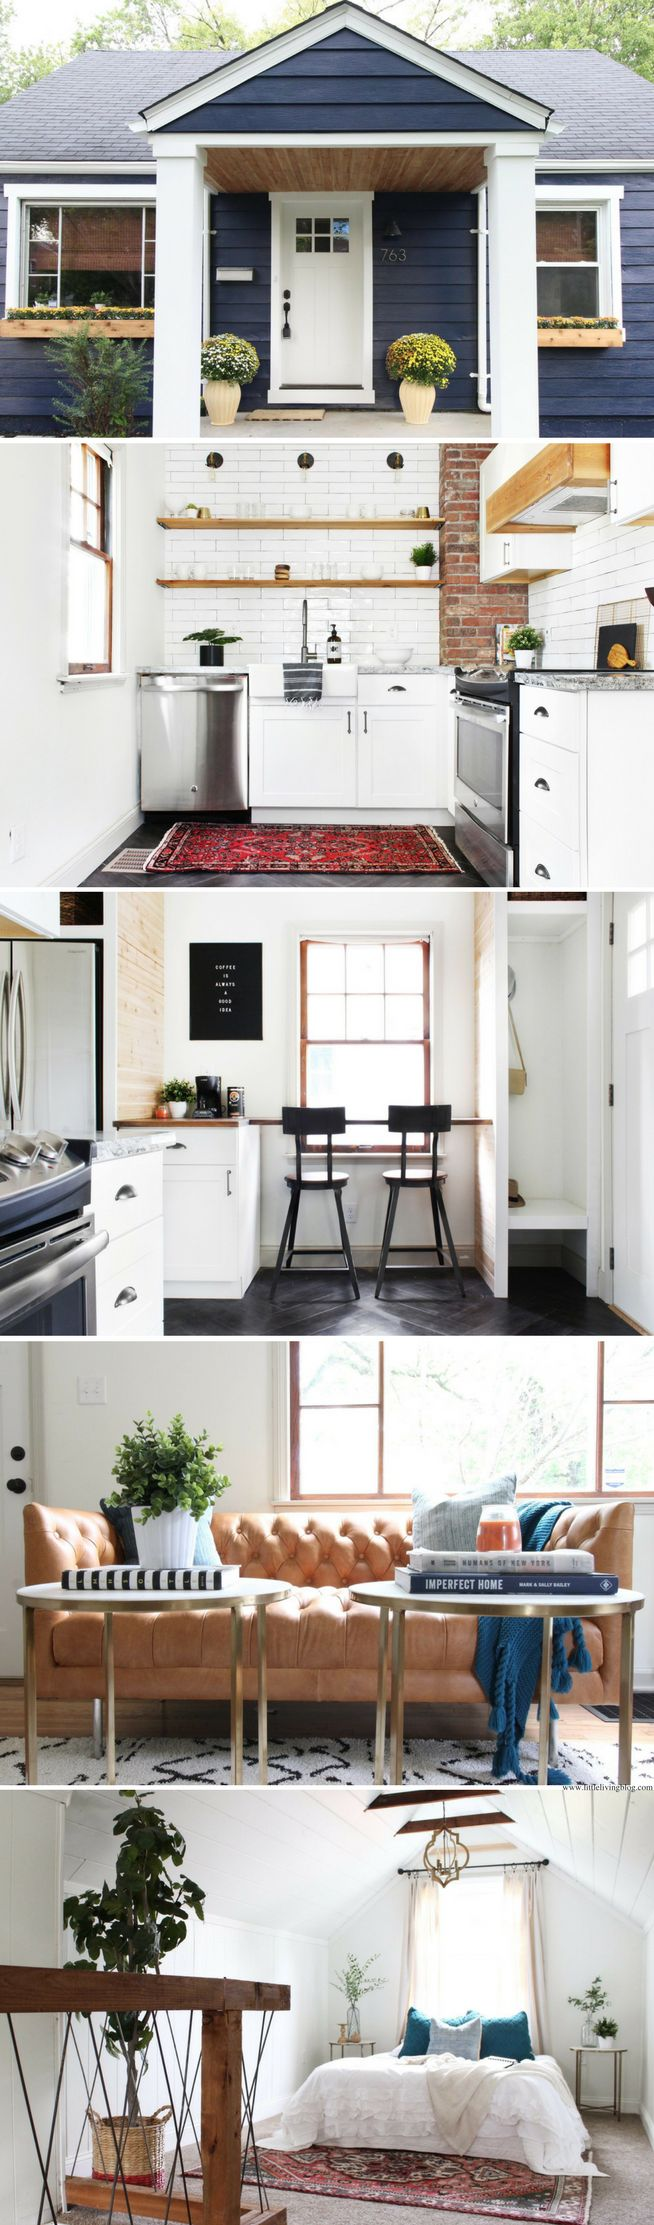 best 25 small house design ideas on pinterest small home plans the chesterfield cottage sq ft super cute love the exterior color and the layout is fantastic omg i want a tiny house so much